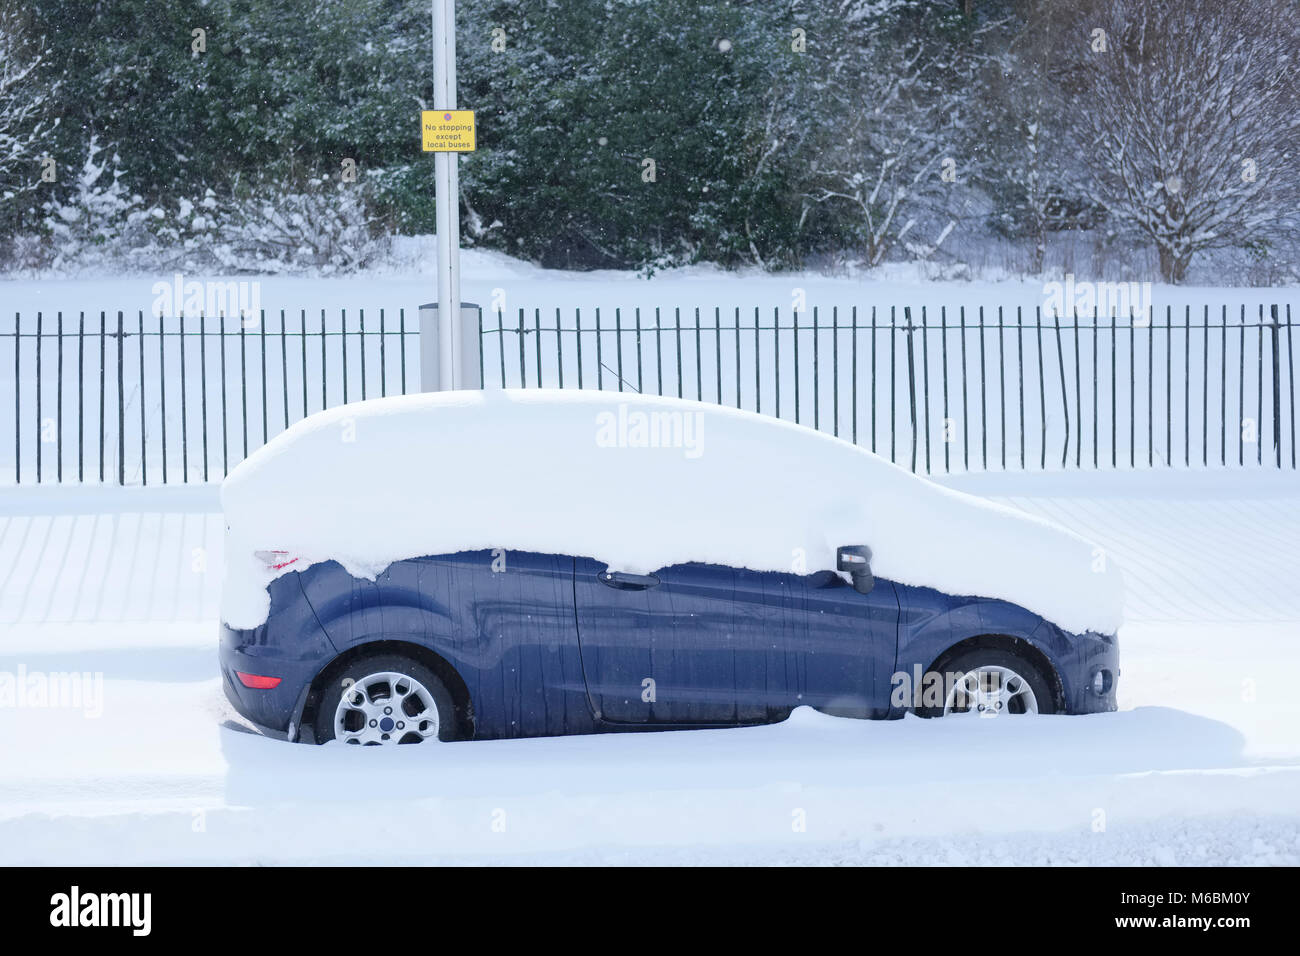 Parked car stuck covered in deep snow on road after heavy harsh winter snowfall unable to travel or transport - Stock Image